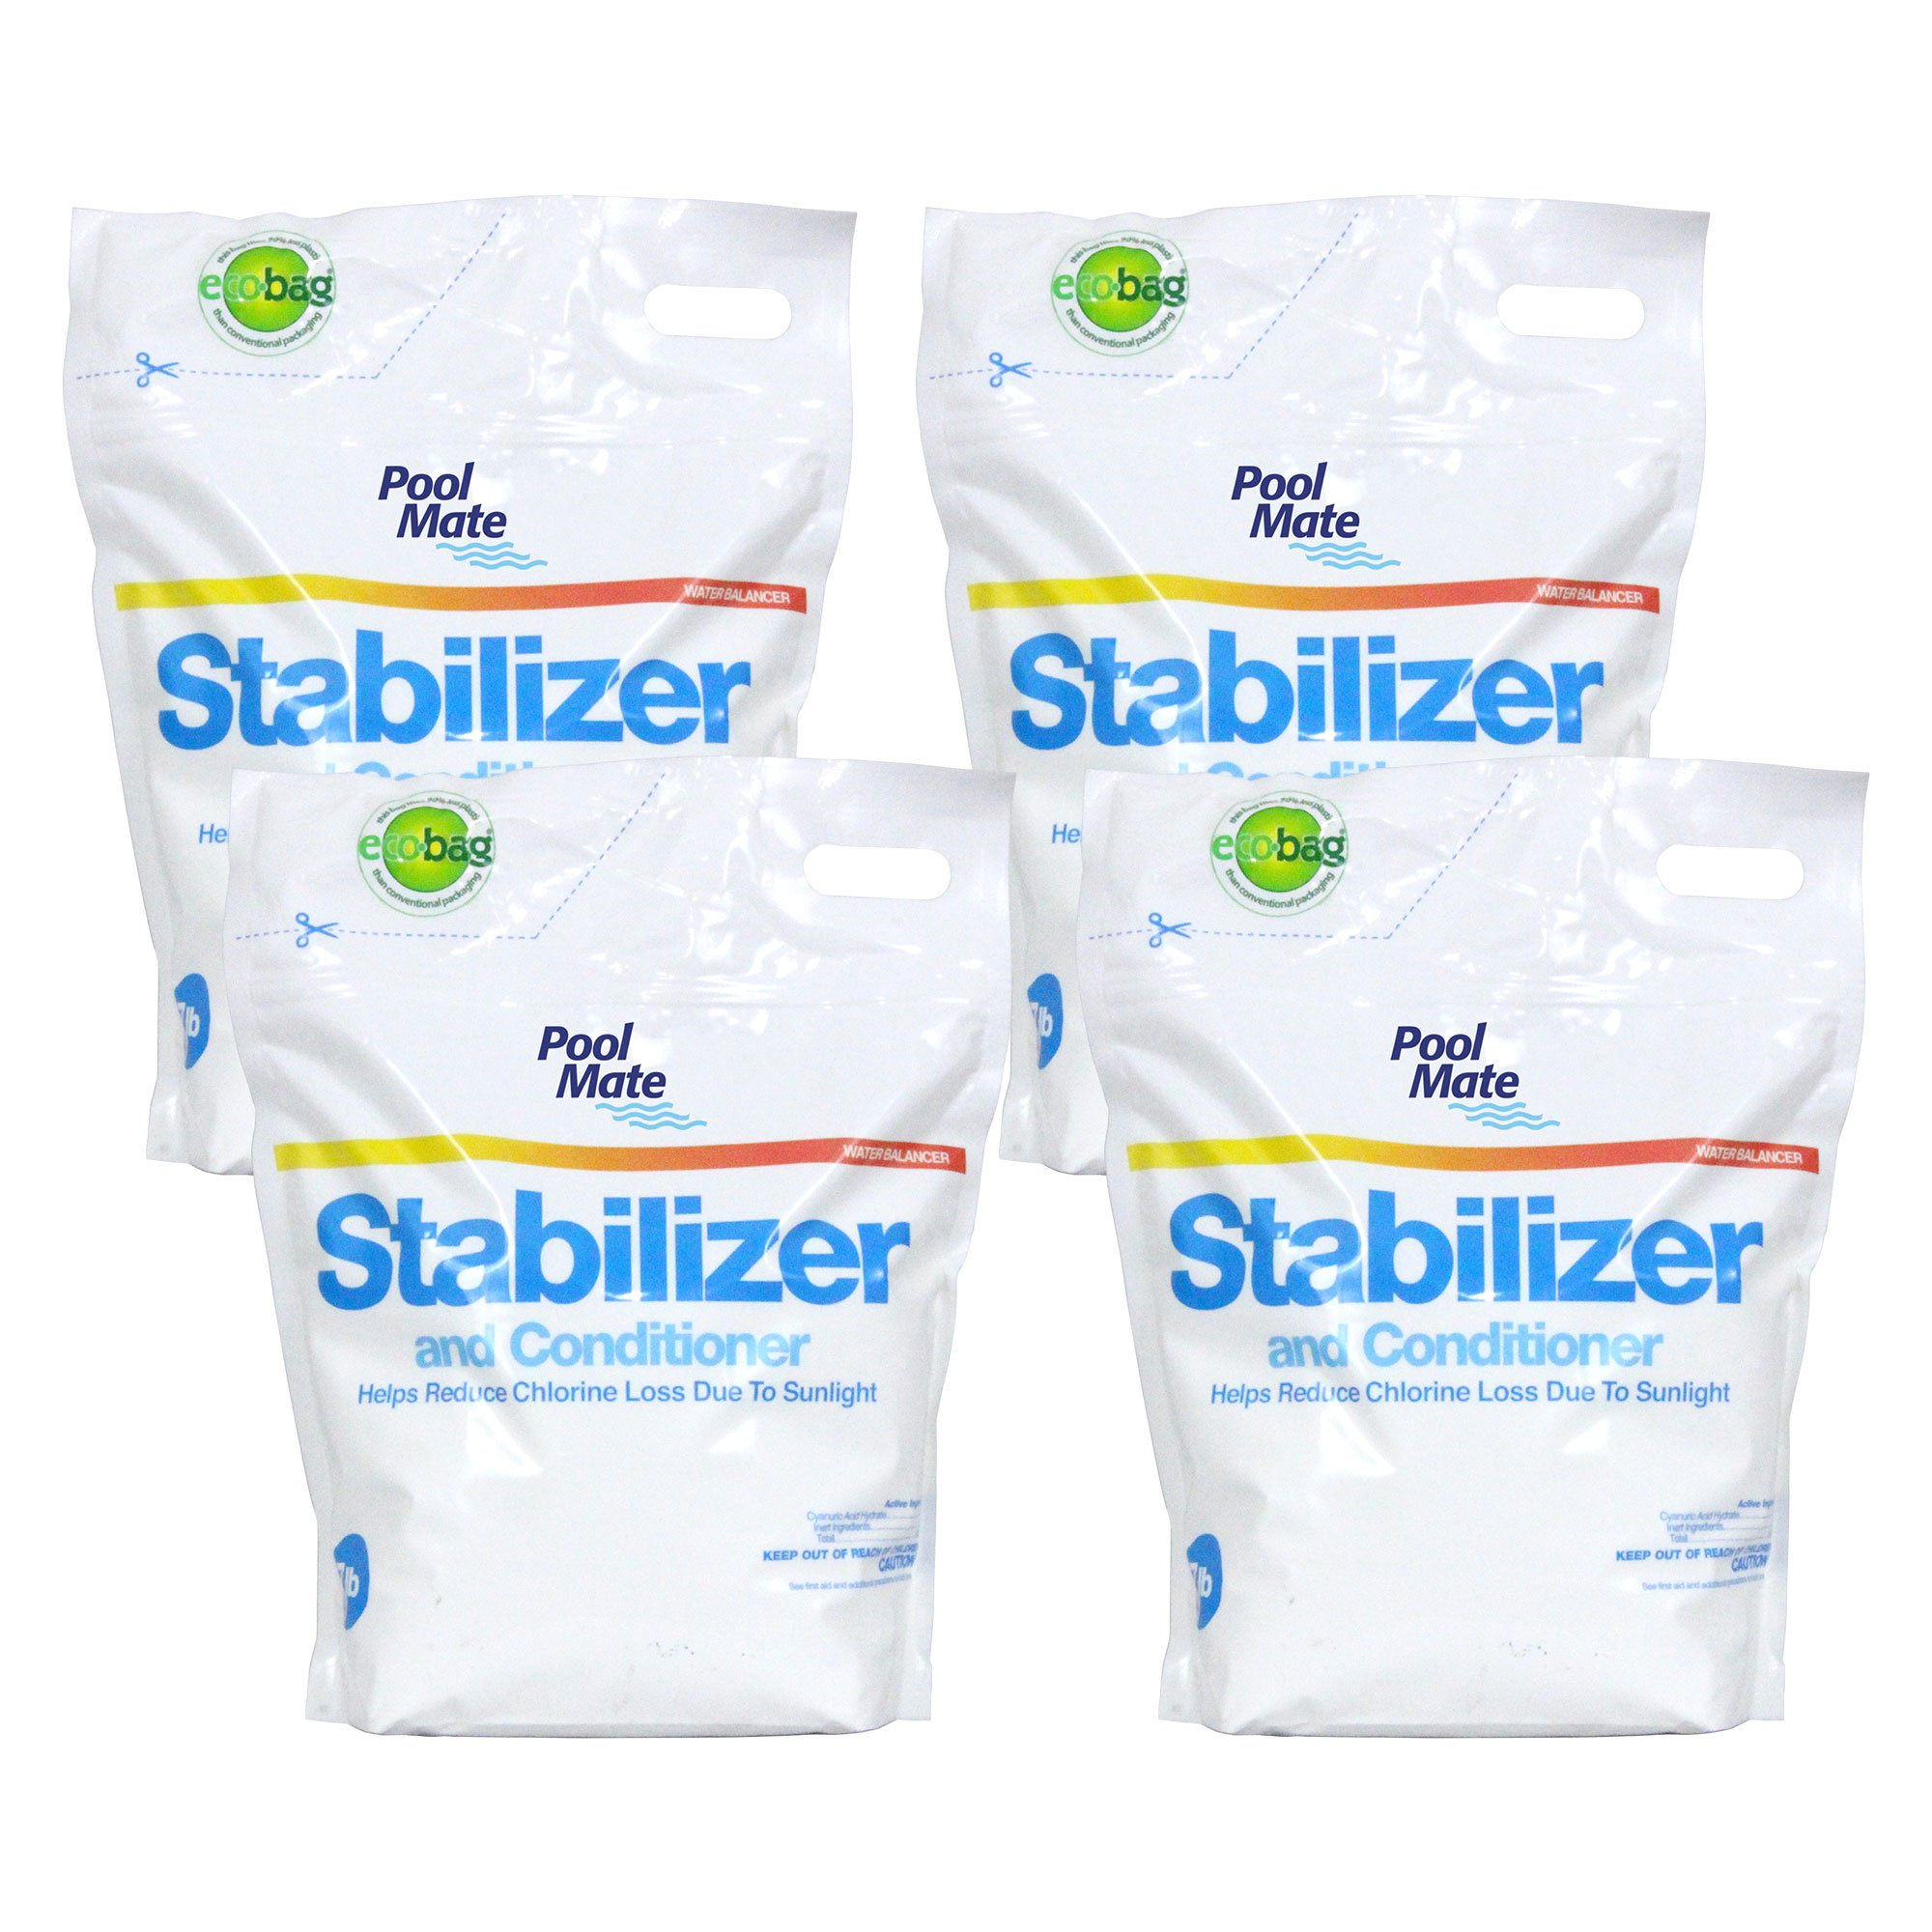 Pool Mate 1-2607B-04 Stabilizer & Conditioner for Swimming Pools, 28 lb by Pool Mate